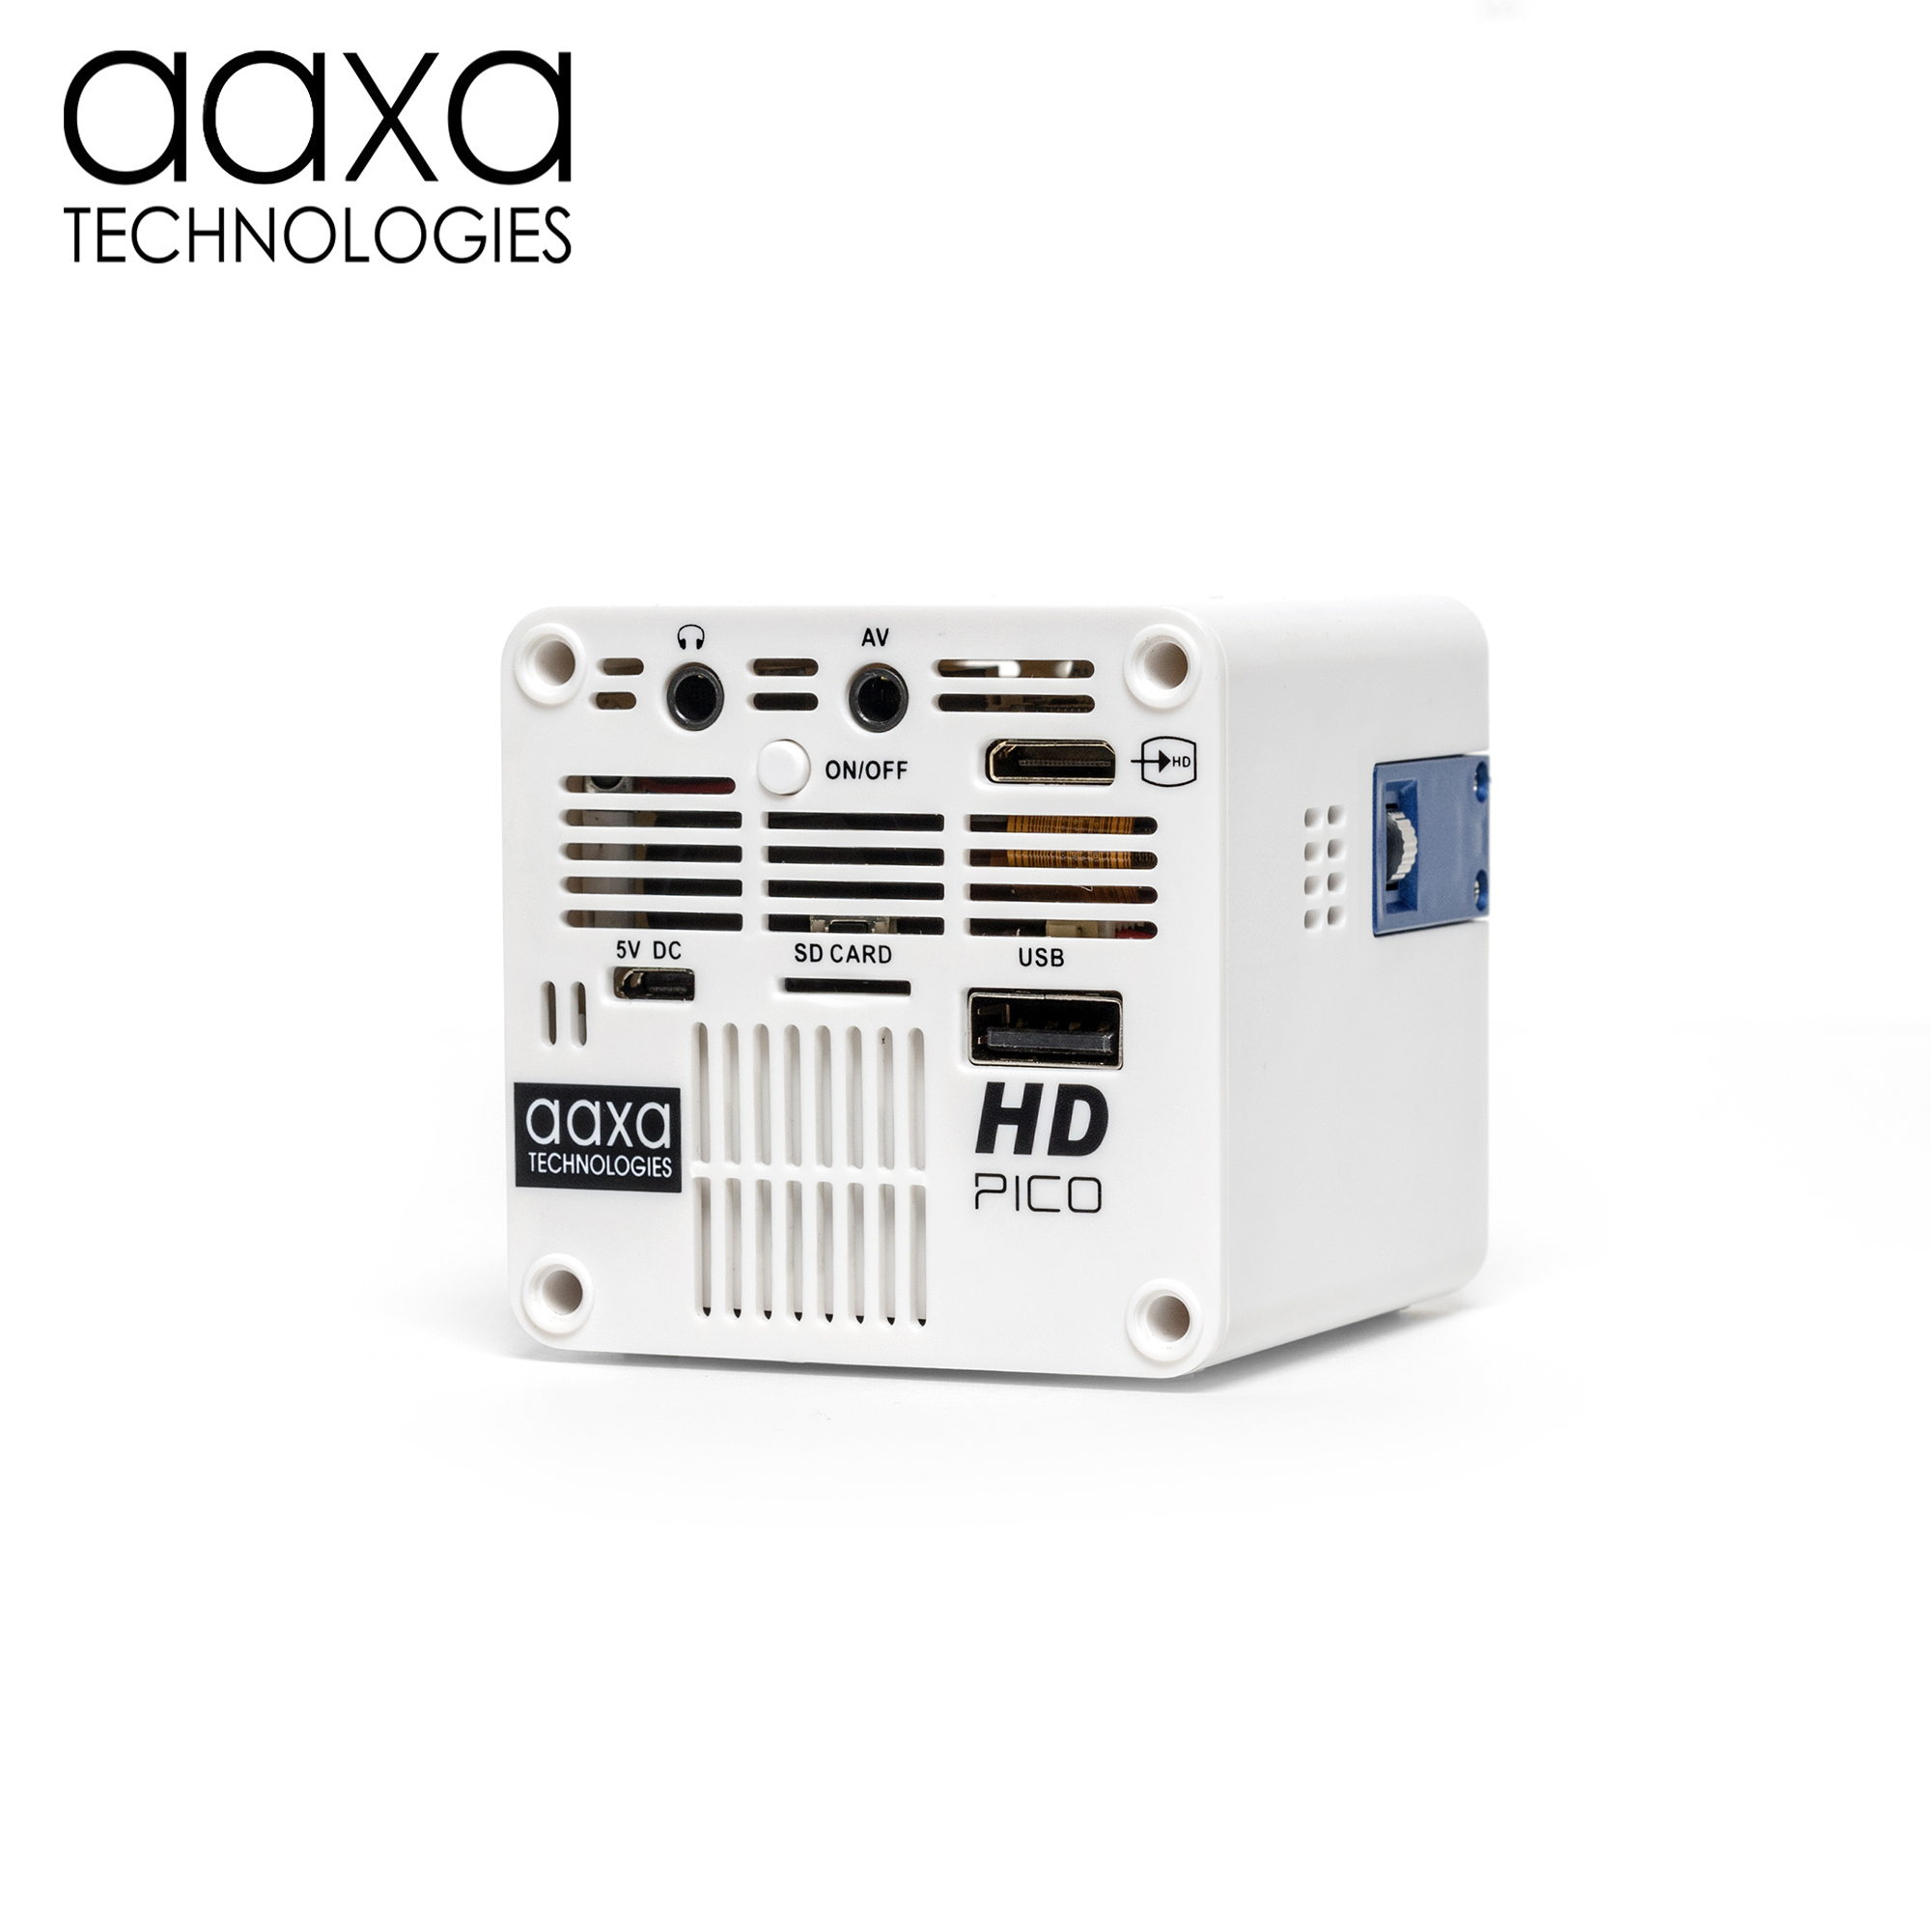 Aaxa technologies announces the hd pico world 39 s smallest for Smallest full hd projector